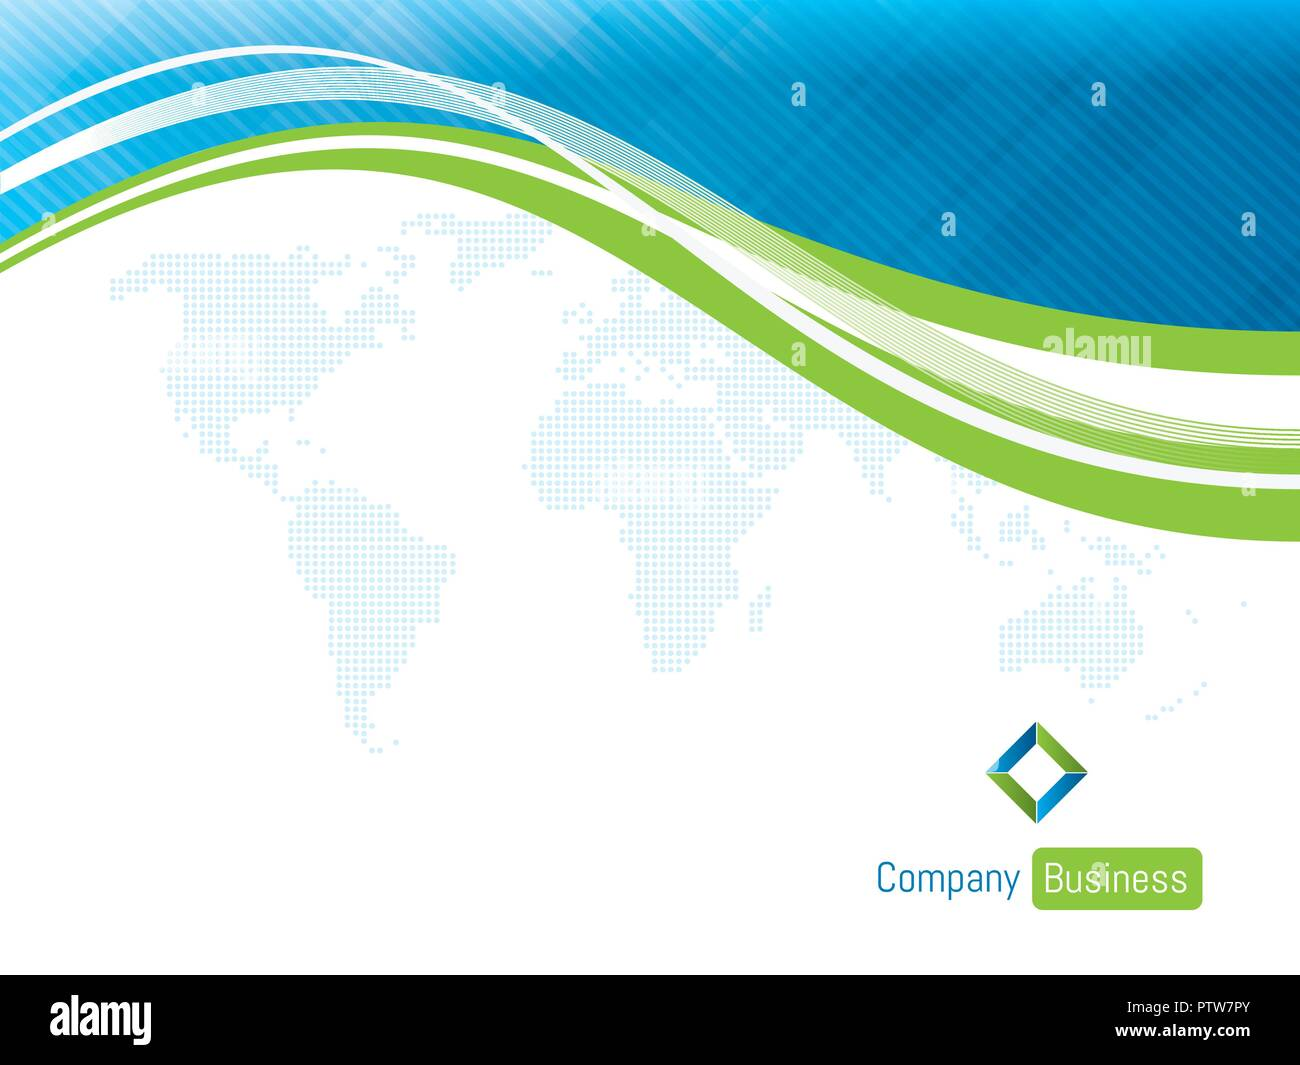 Background template business blue with world map. Concept of presentation business presentation with shapes on blue waves with white background in vec - Stock Image